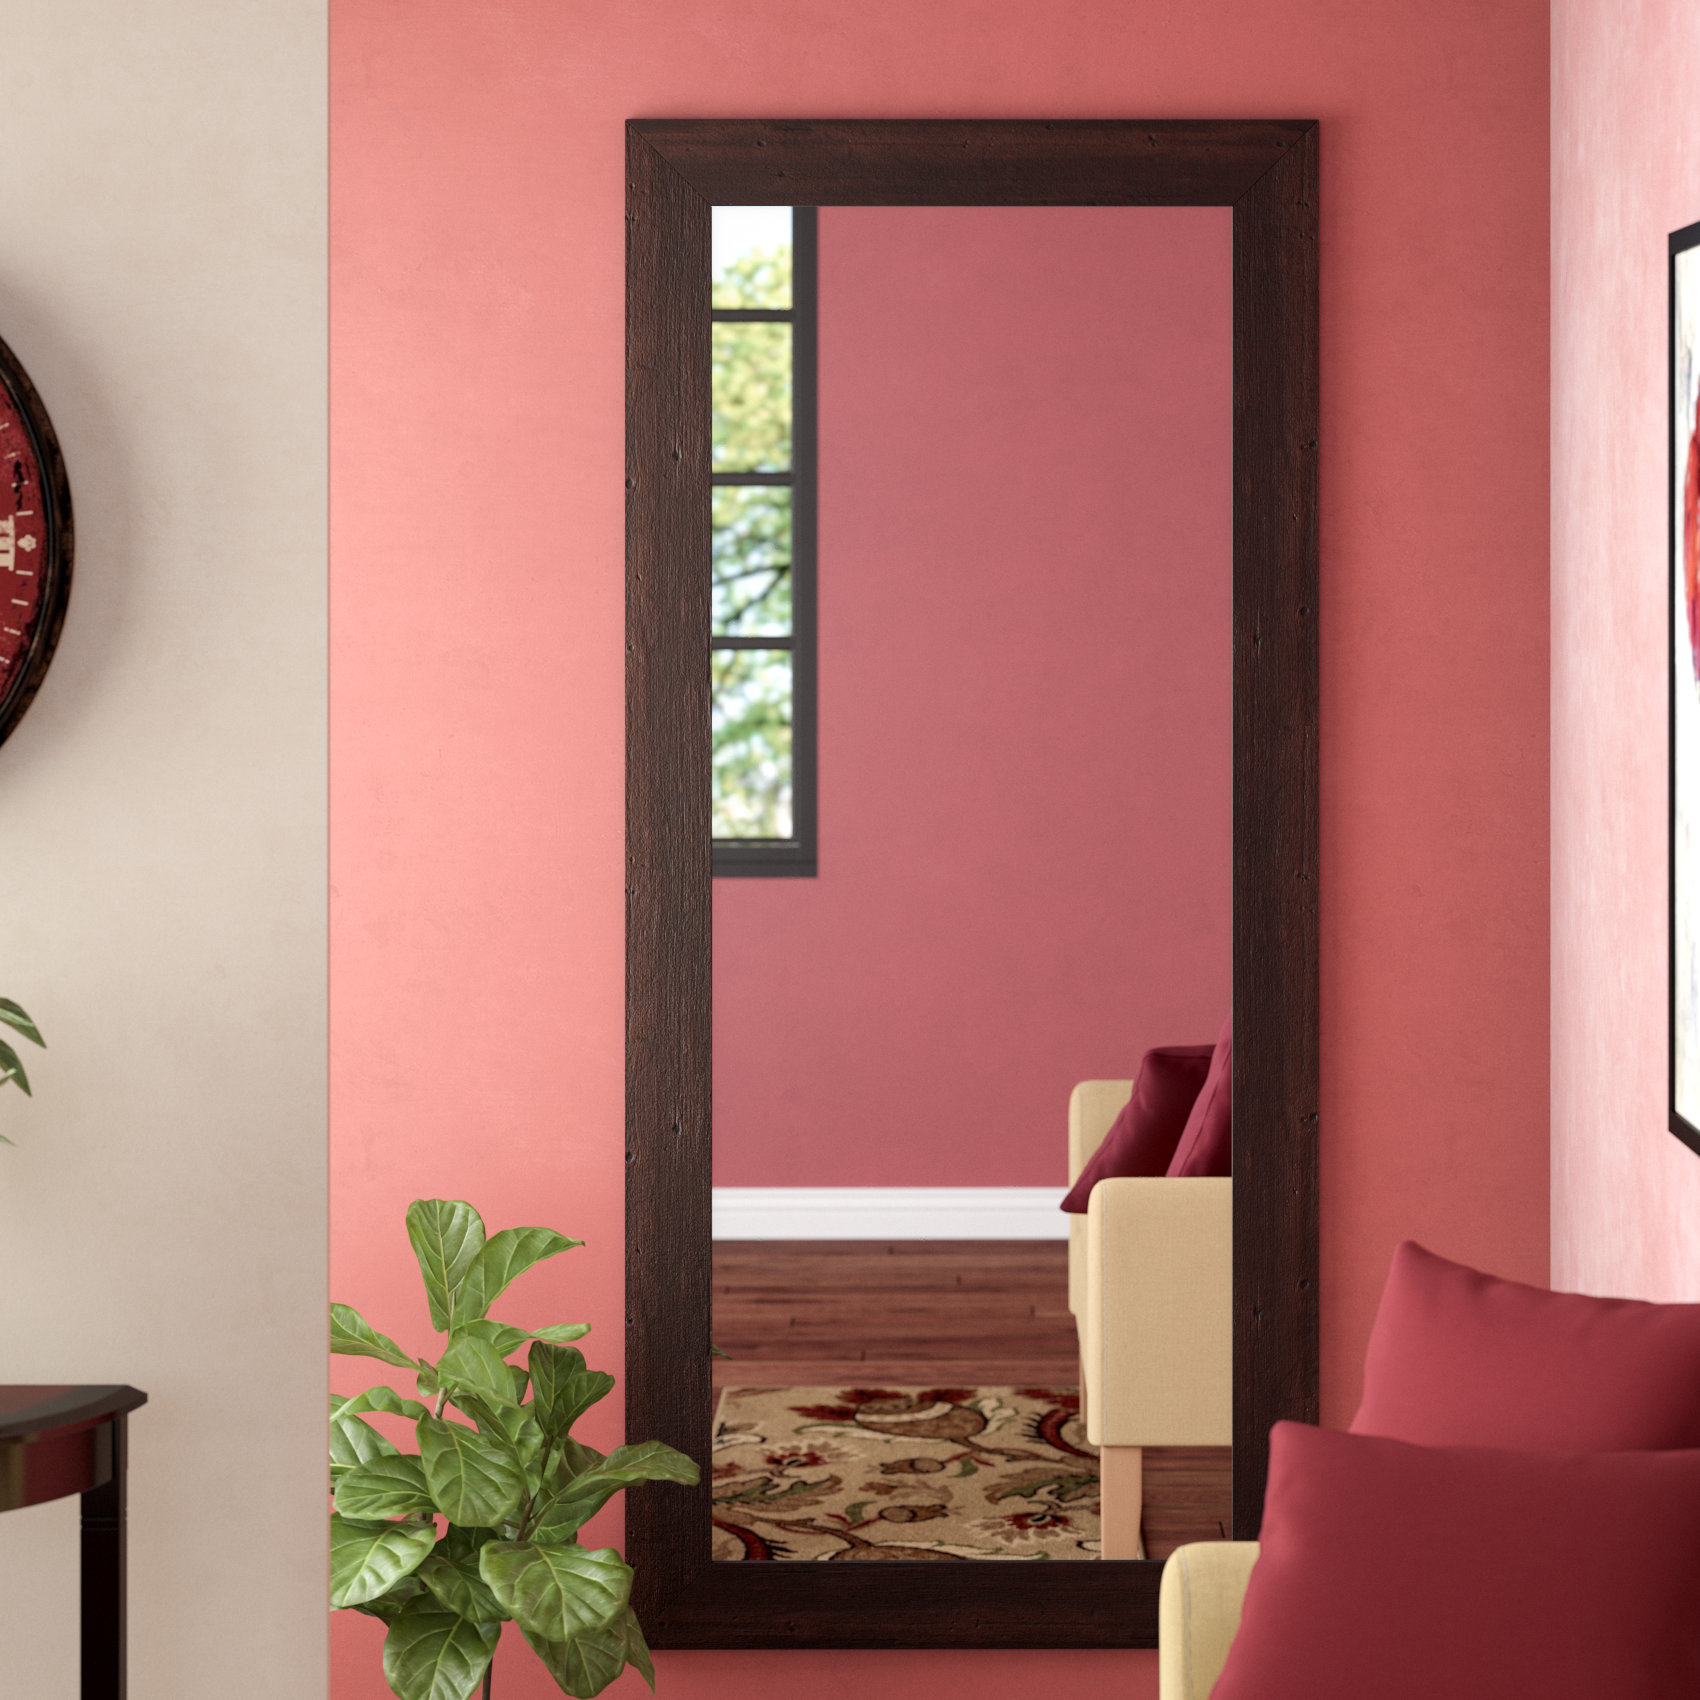 Farmhouse & Rustic Red Barrel Studio Wall & Accent Mirrors Pertaining To Hallas Wall Organizer Mirrors (Image 2 of 20)